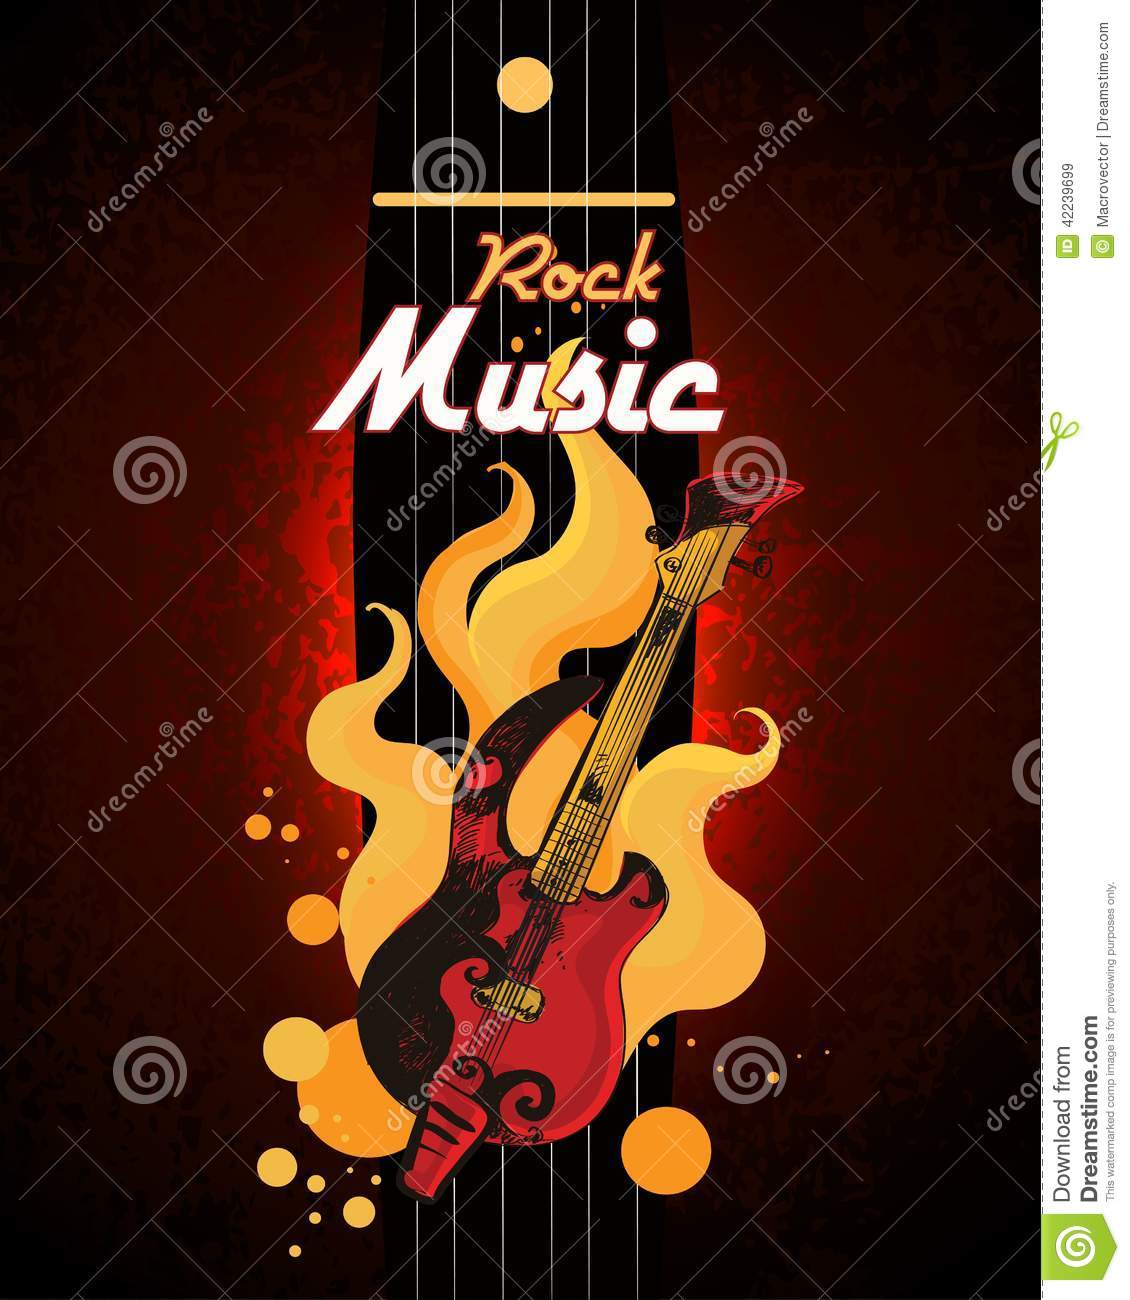 Rock Music Poster Stock Vector - Image: 42239699